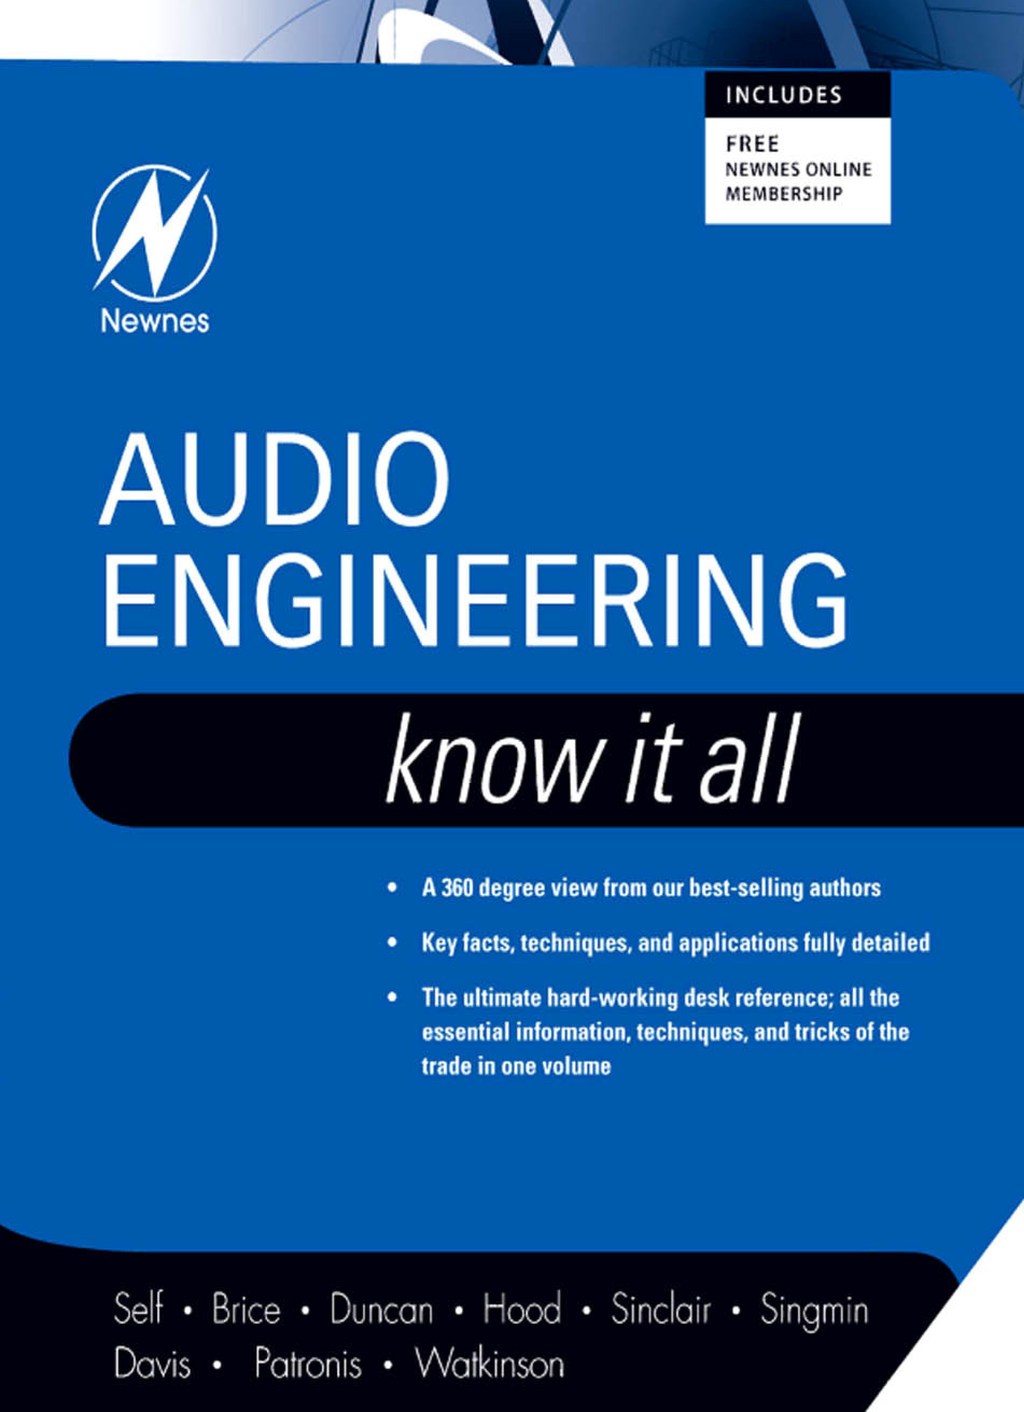 Audio Engineering: Know It All By: Andrew Singmin,Ben Duncan,Don Davis,Douglas Self,Eugene Patronis,Ian Sinclair,John Linsley Hood,John Watkinson,Richard Brice